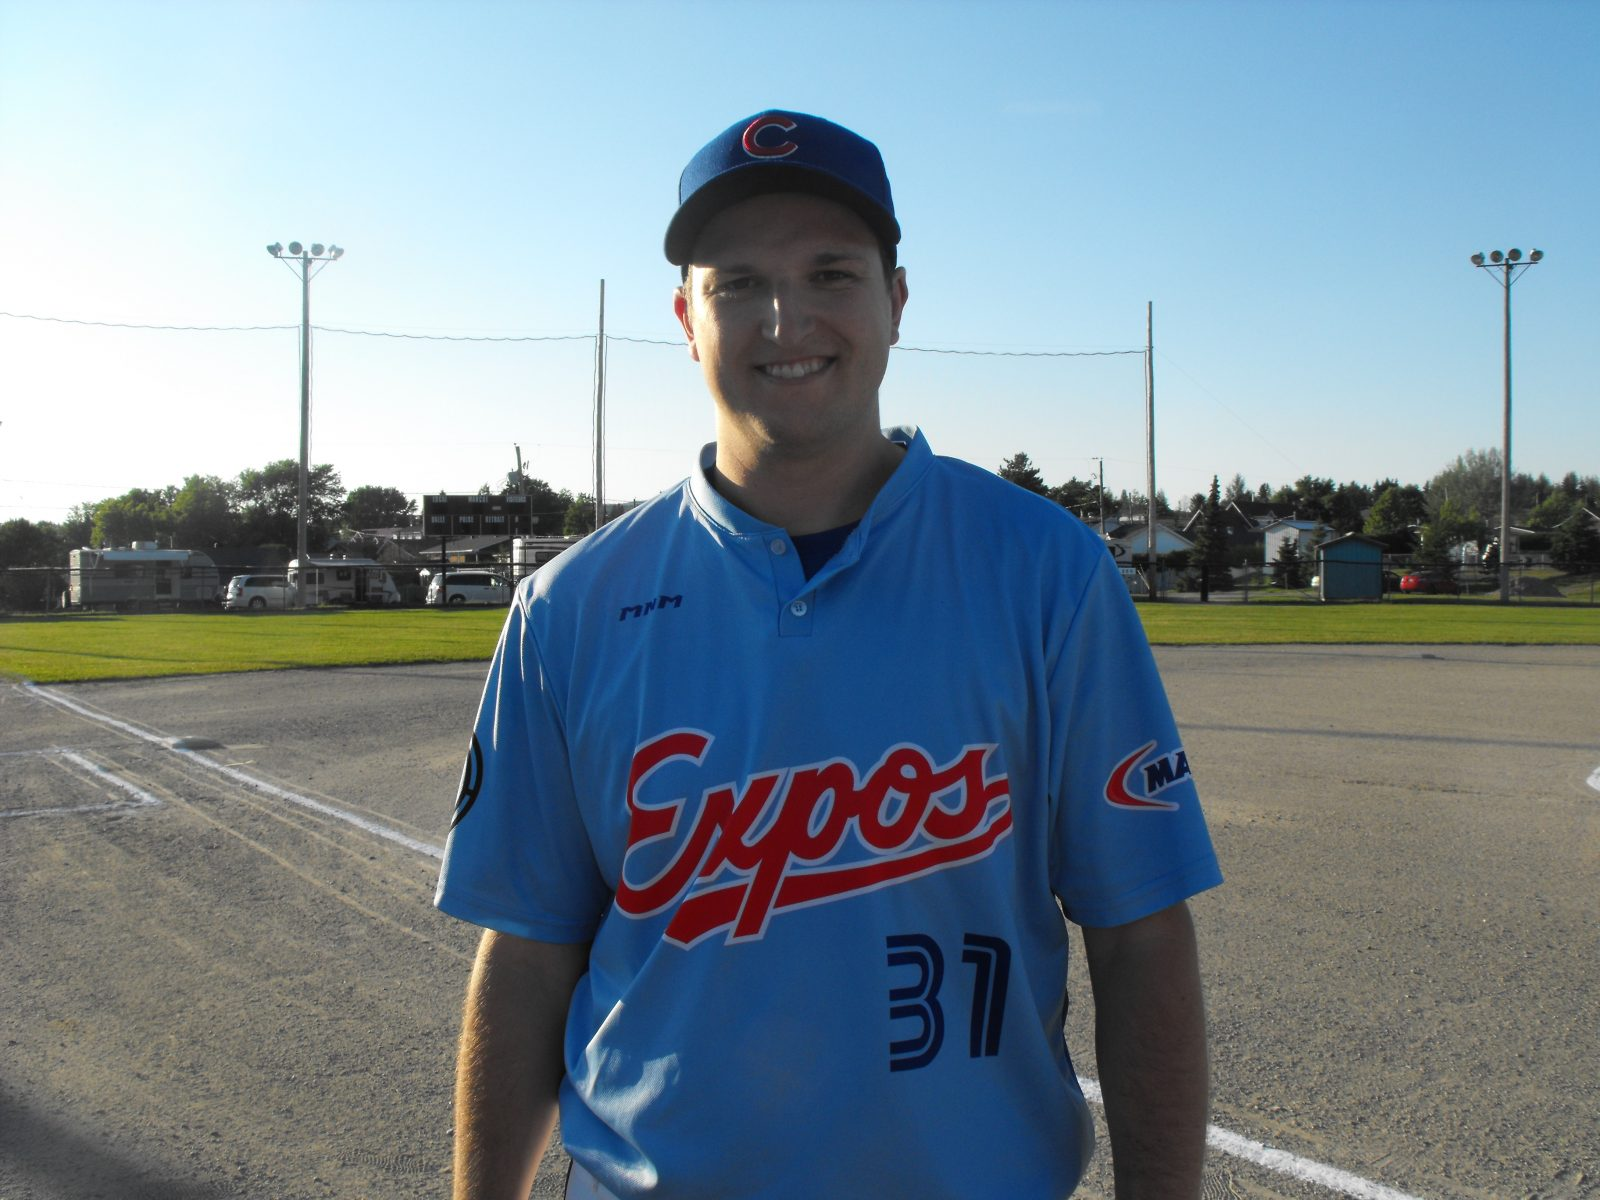 Ligue de softball Sports Experts / Molson : David Nadeau est le joueur de la semaine